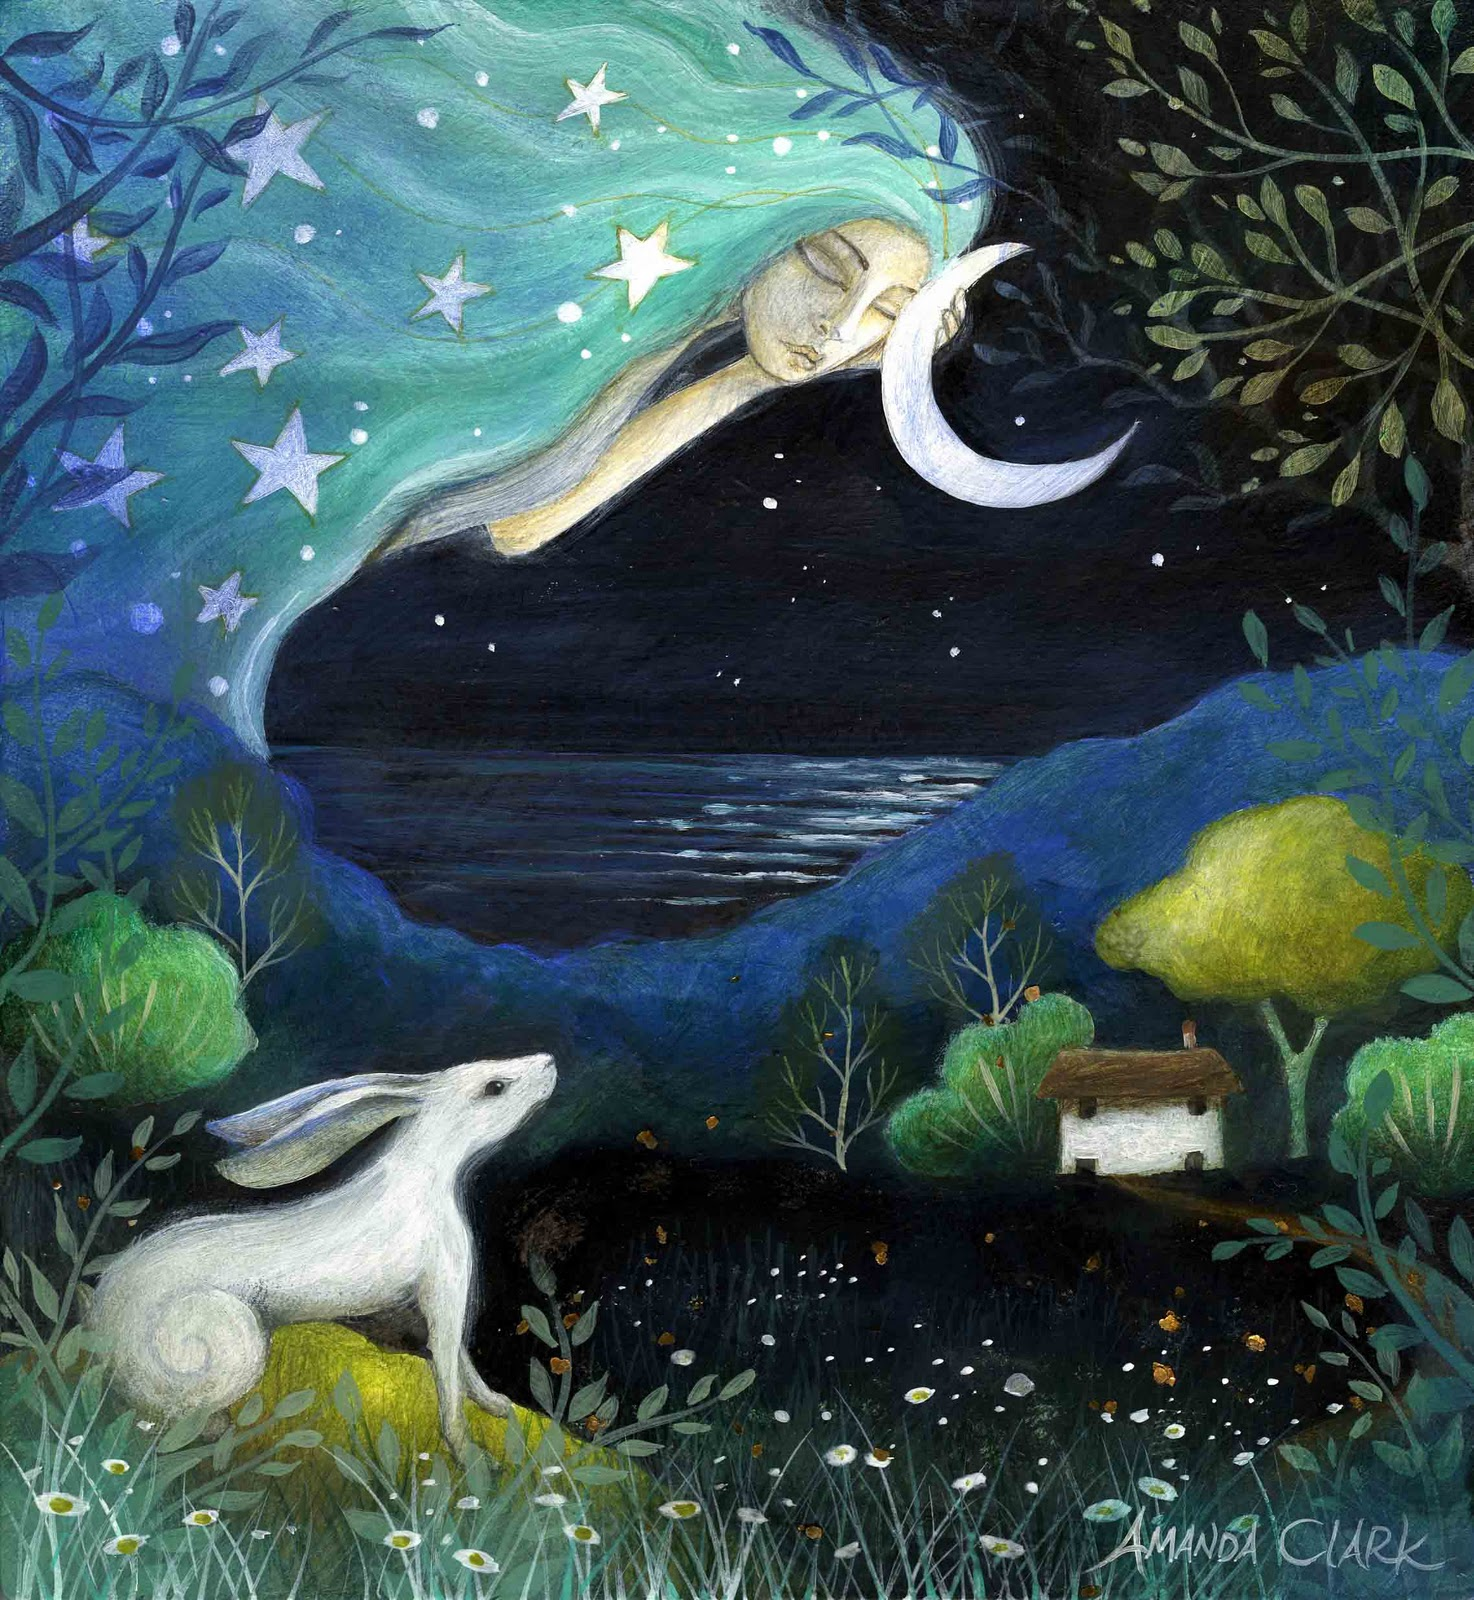 Earth angels art art and illustrations by amanda clark moon dreams and fields of jade - The hideout in the woods an artists dream ...